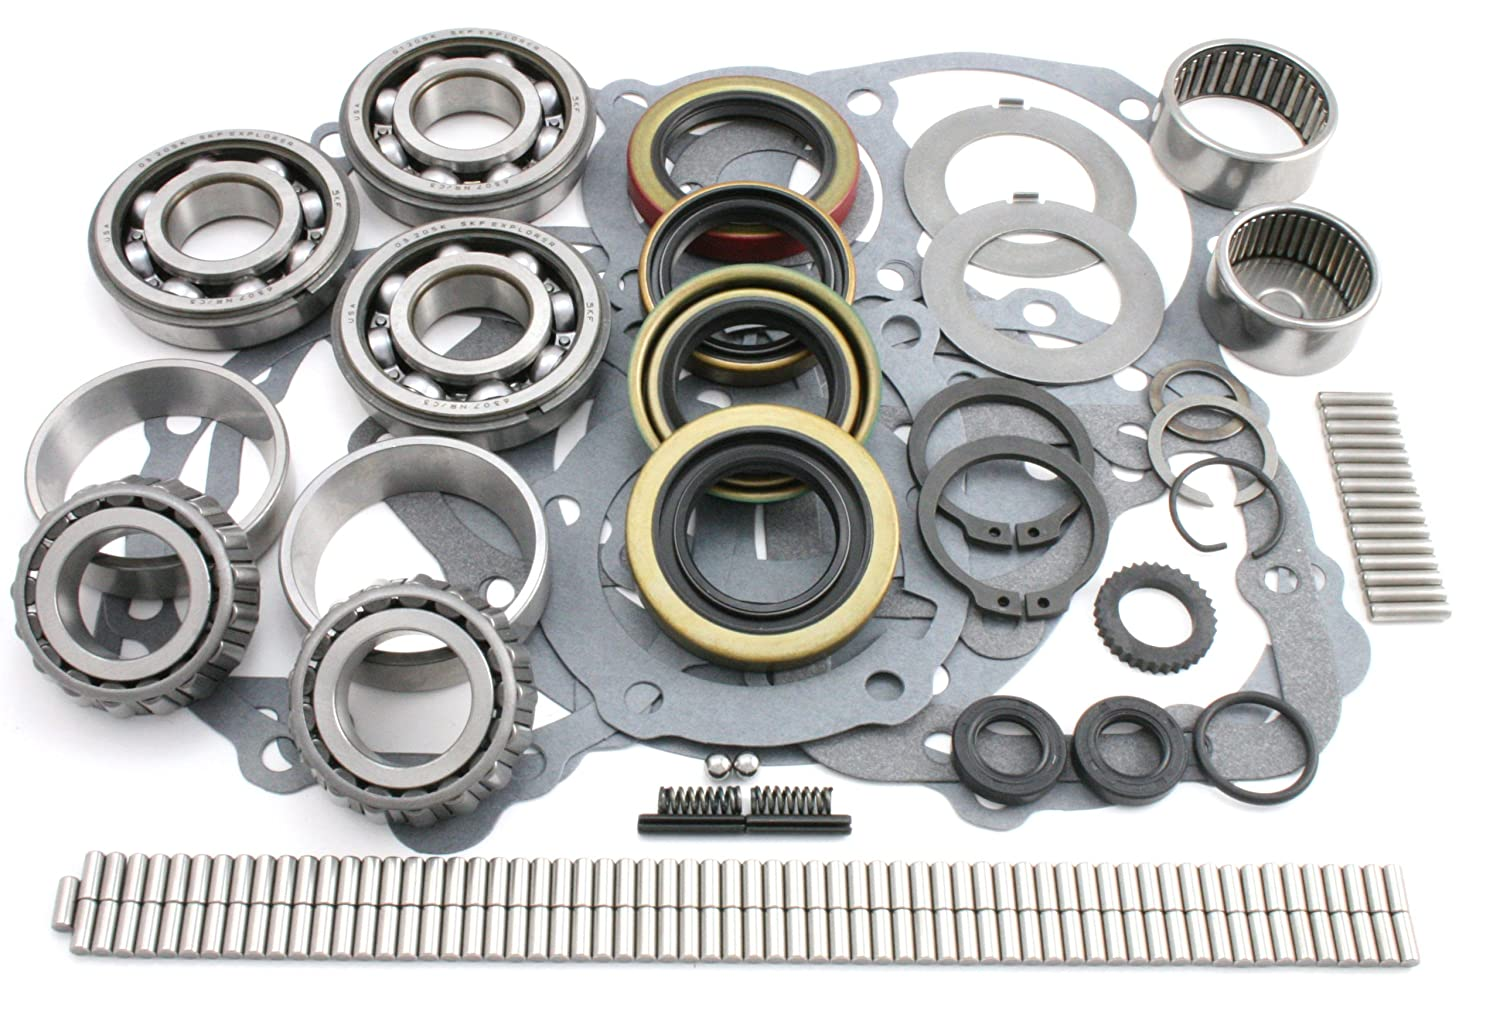 All Chevy chevy 205 transfer case : Amazon.com: Transparts Warehouse BK205GDM GM Chevy Dodge NP205 ...